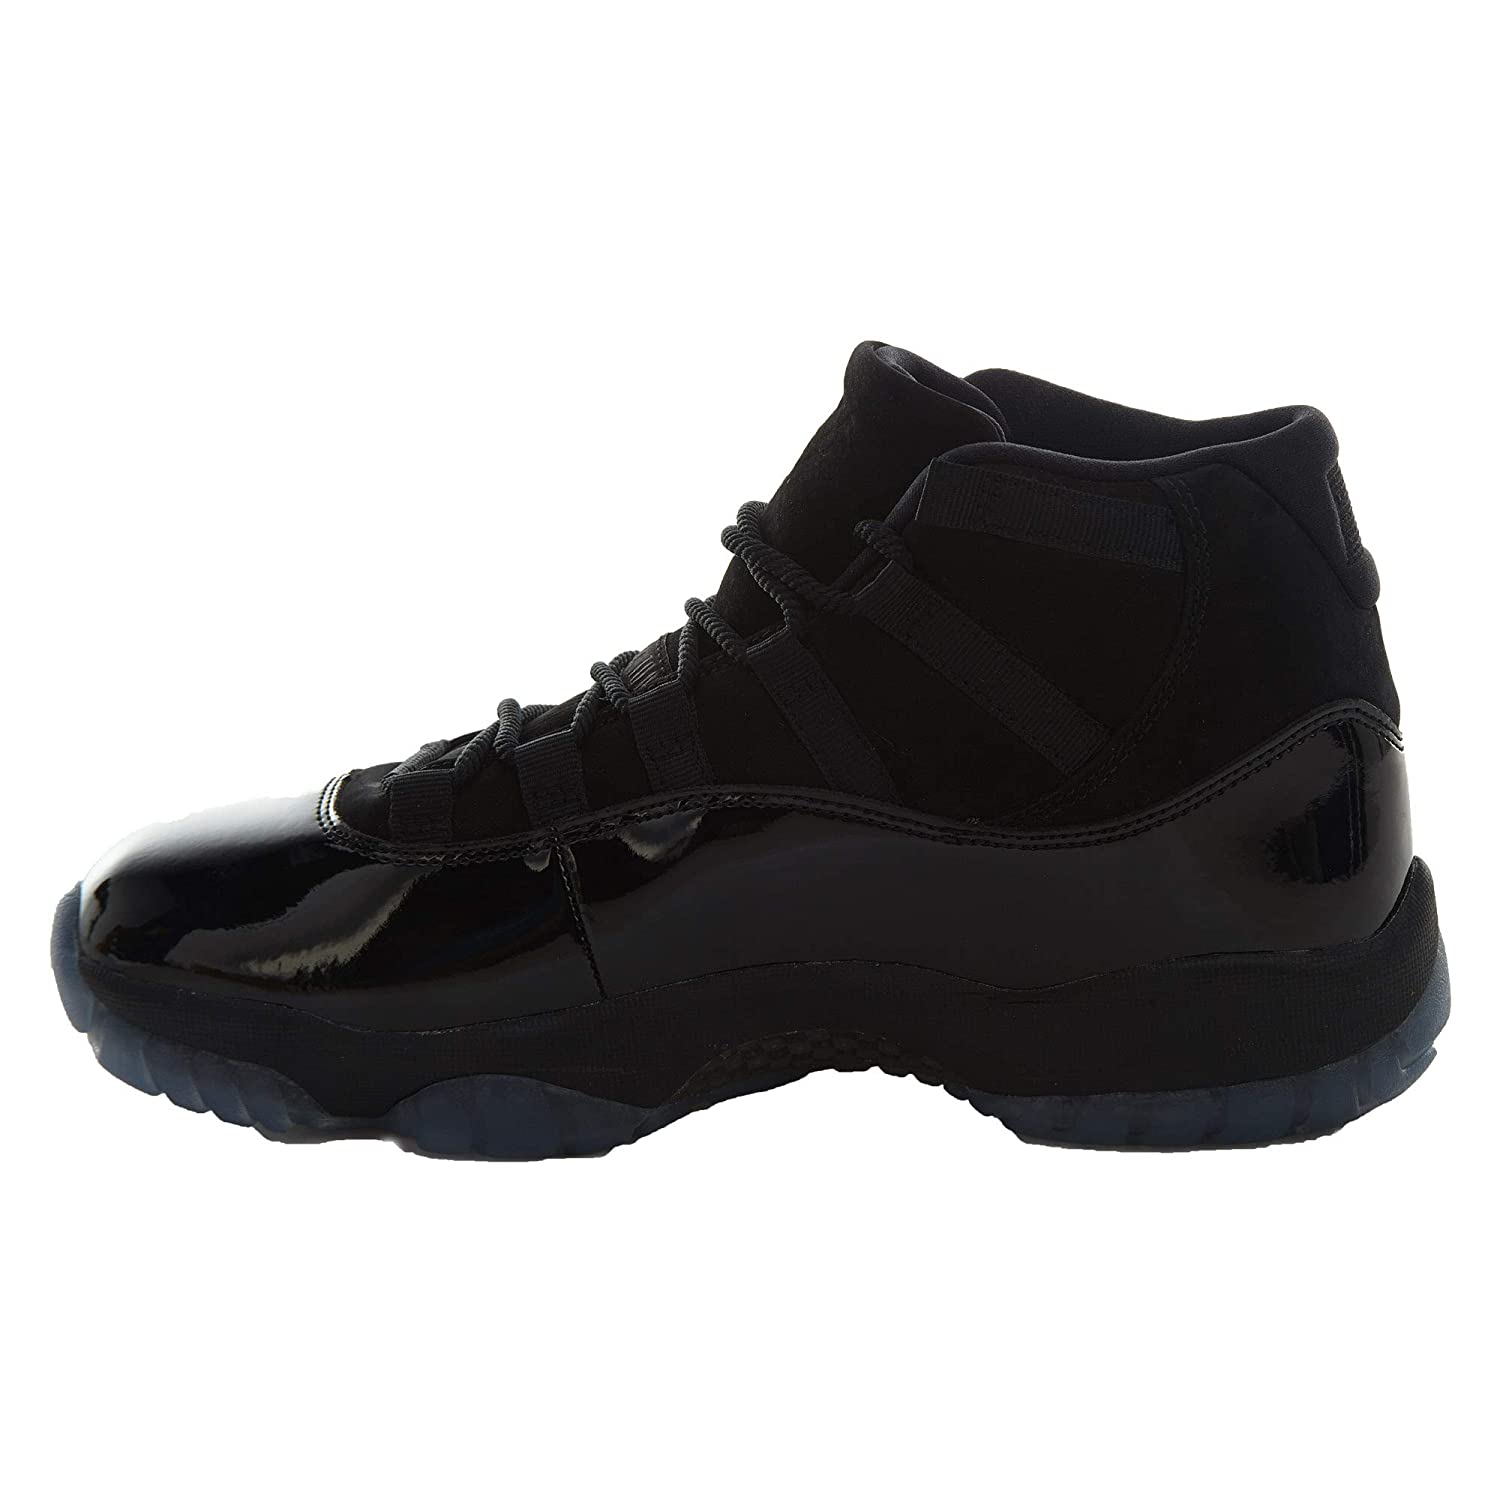 Amazon.com  Air Jordan 11 Retro Cap and Gown Men s Shoes Black Black-Black  378037-005 (12 D(M) US)  Sports   Outdoors facd50cad